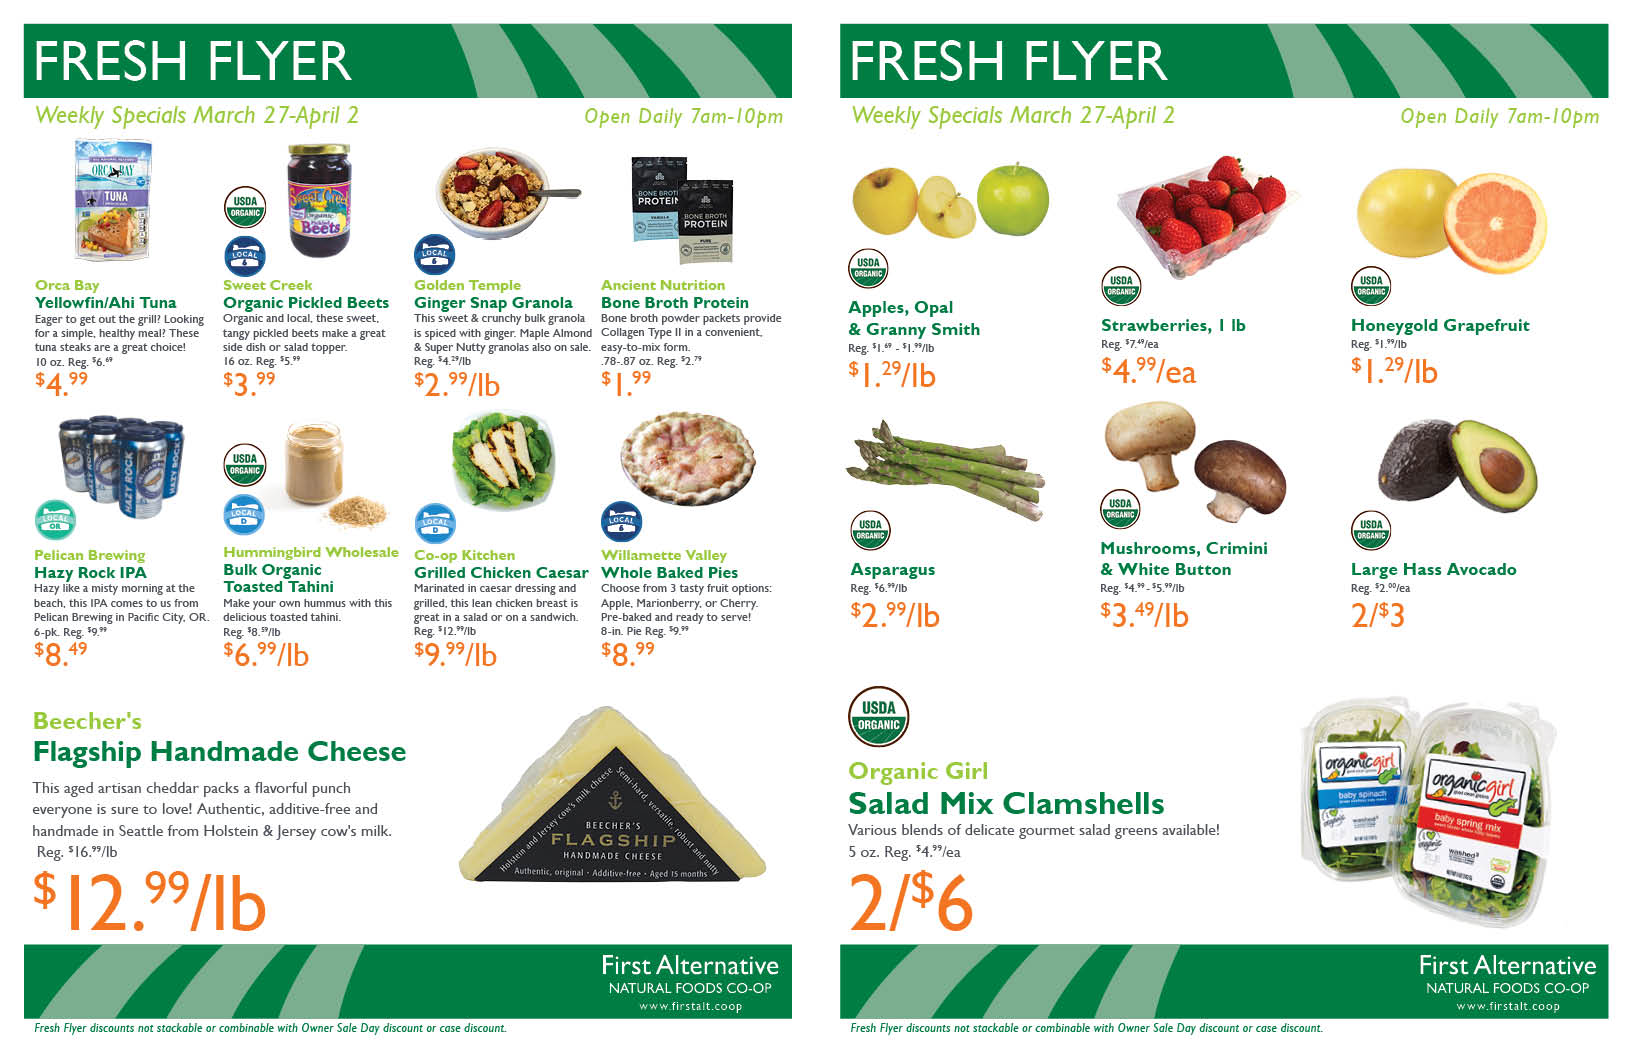 First Alternative Co-op Fresh Flyer March 27-April 2